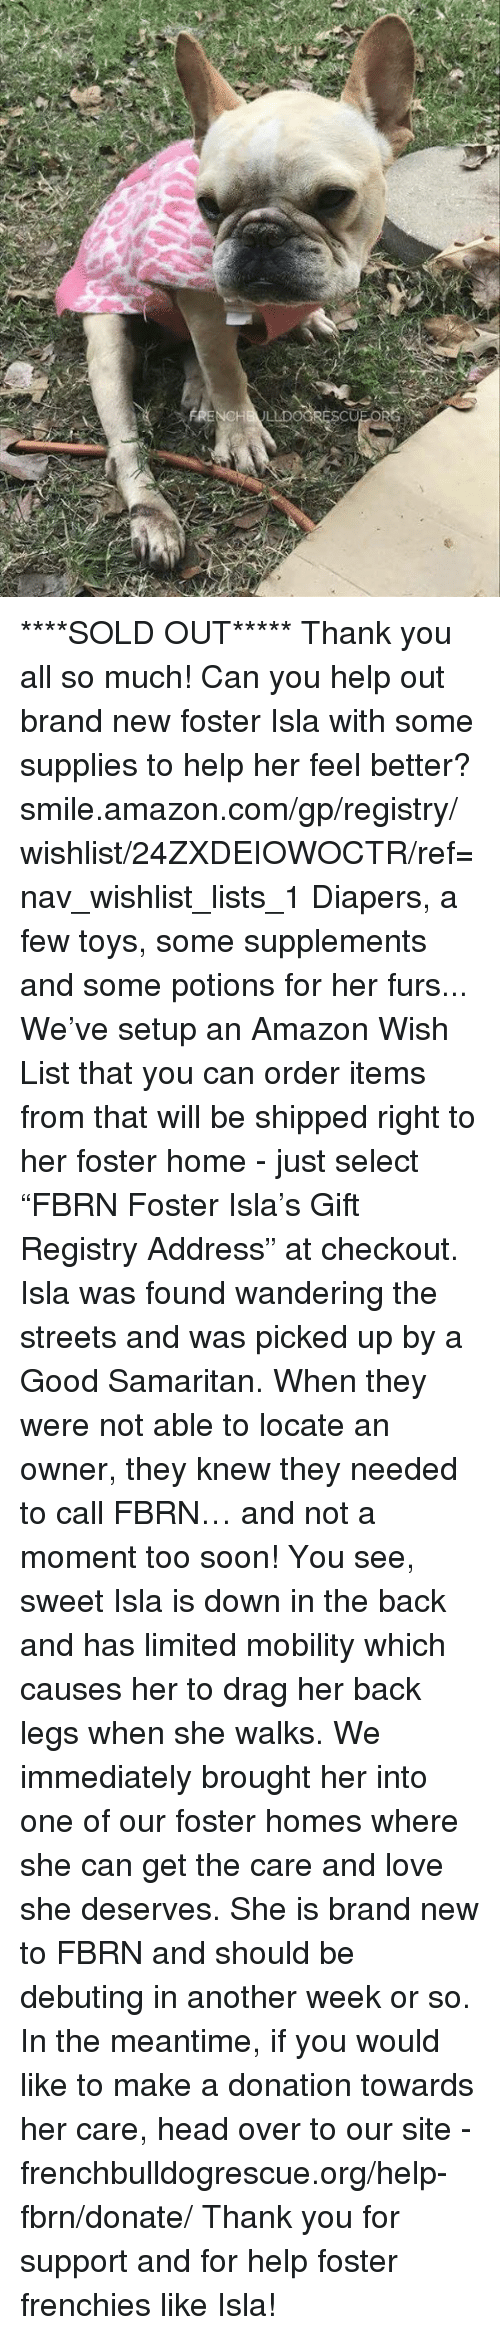 "Amazon, Memes, and amazon.com: LDOORES ****SOLD OUT***** Thank you all so much!  Can you help out brand new foster Isla with some supplies to help her feel better? smile.amazon.com/gp/registry/wishlist/24ZXDEIOWOCTR/ref=nav_wishlist_lists_1  Diapers, a few toys, some supplements and some potions for her furs... We've setup an Amazon Wish List that you can order items from that will be shipped right to her foster home - just select ""FBRN Foster Isla's Gift Registry Address"" at checkout.  Isla was found wandering the streets and was picked up by a Good Samaritan. When they were not able to locate an owner, they knew they needed to call FBRN… and not a moment too soon!  You see, sweet Isla is down in the back and has limited mobility which causes her to drag her back legs when she walks. We immediately brought her into one of our foster homes where she can get the care and love she deserves.   She is brand new to FBRN and should be debuting in another week or so. In the meantime, if you would like to make a donation towards her care, head over to our site - frenchbulldogrescue.org/help-fbrn/donate/ Thank you for support and for help foster frenchies like Isla!"